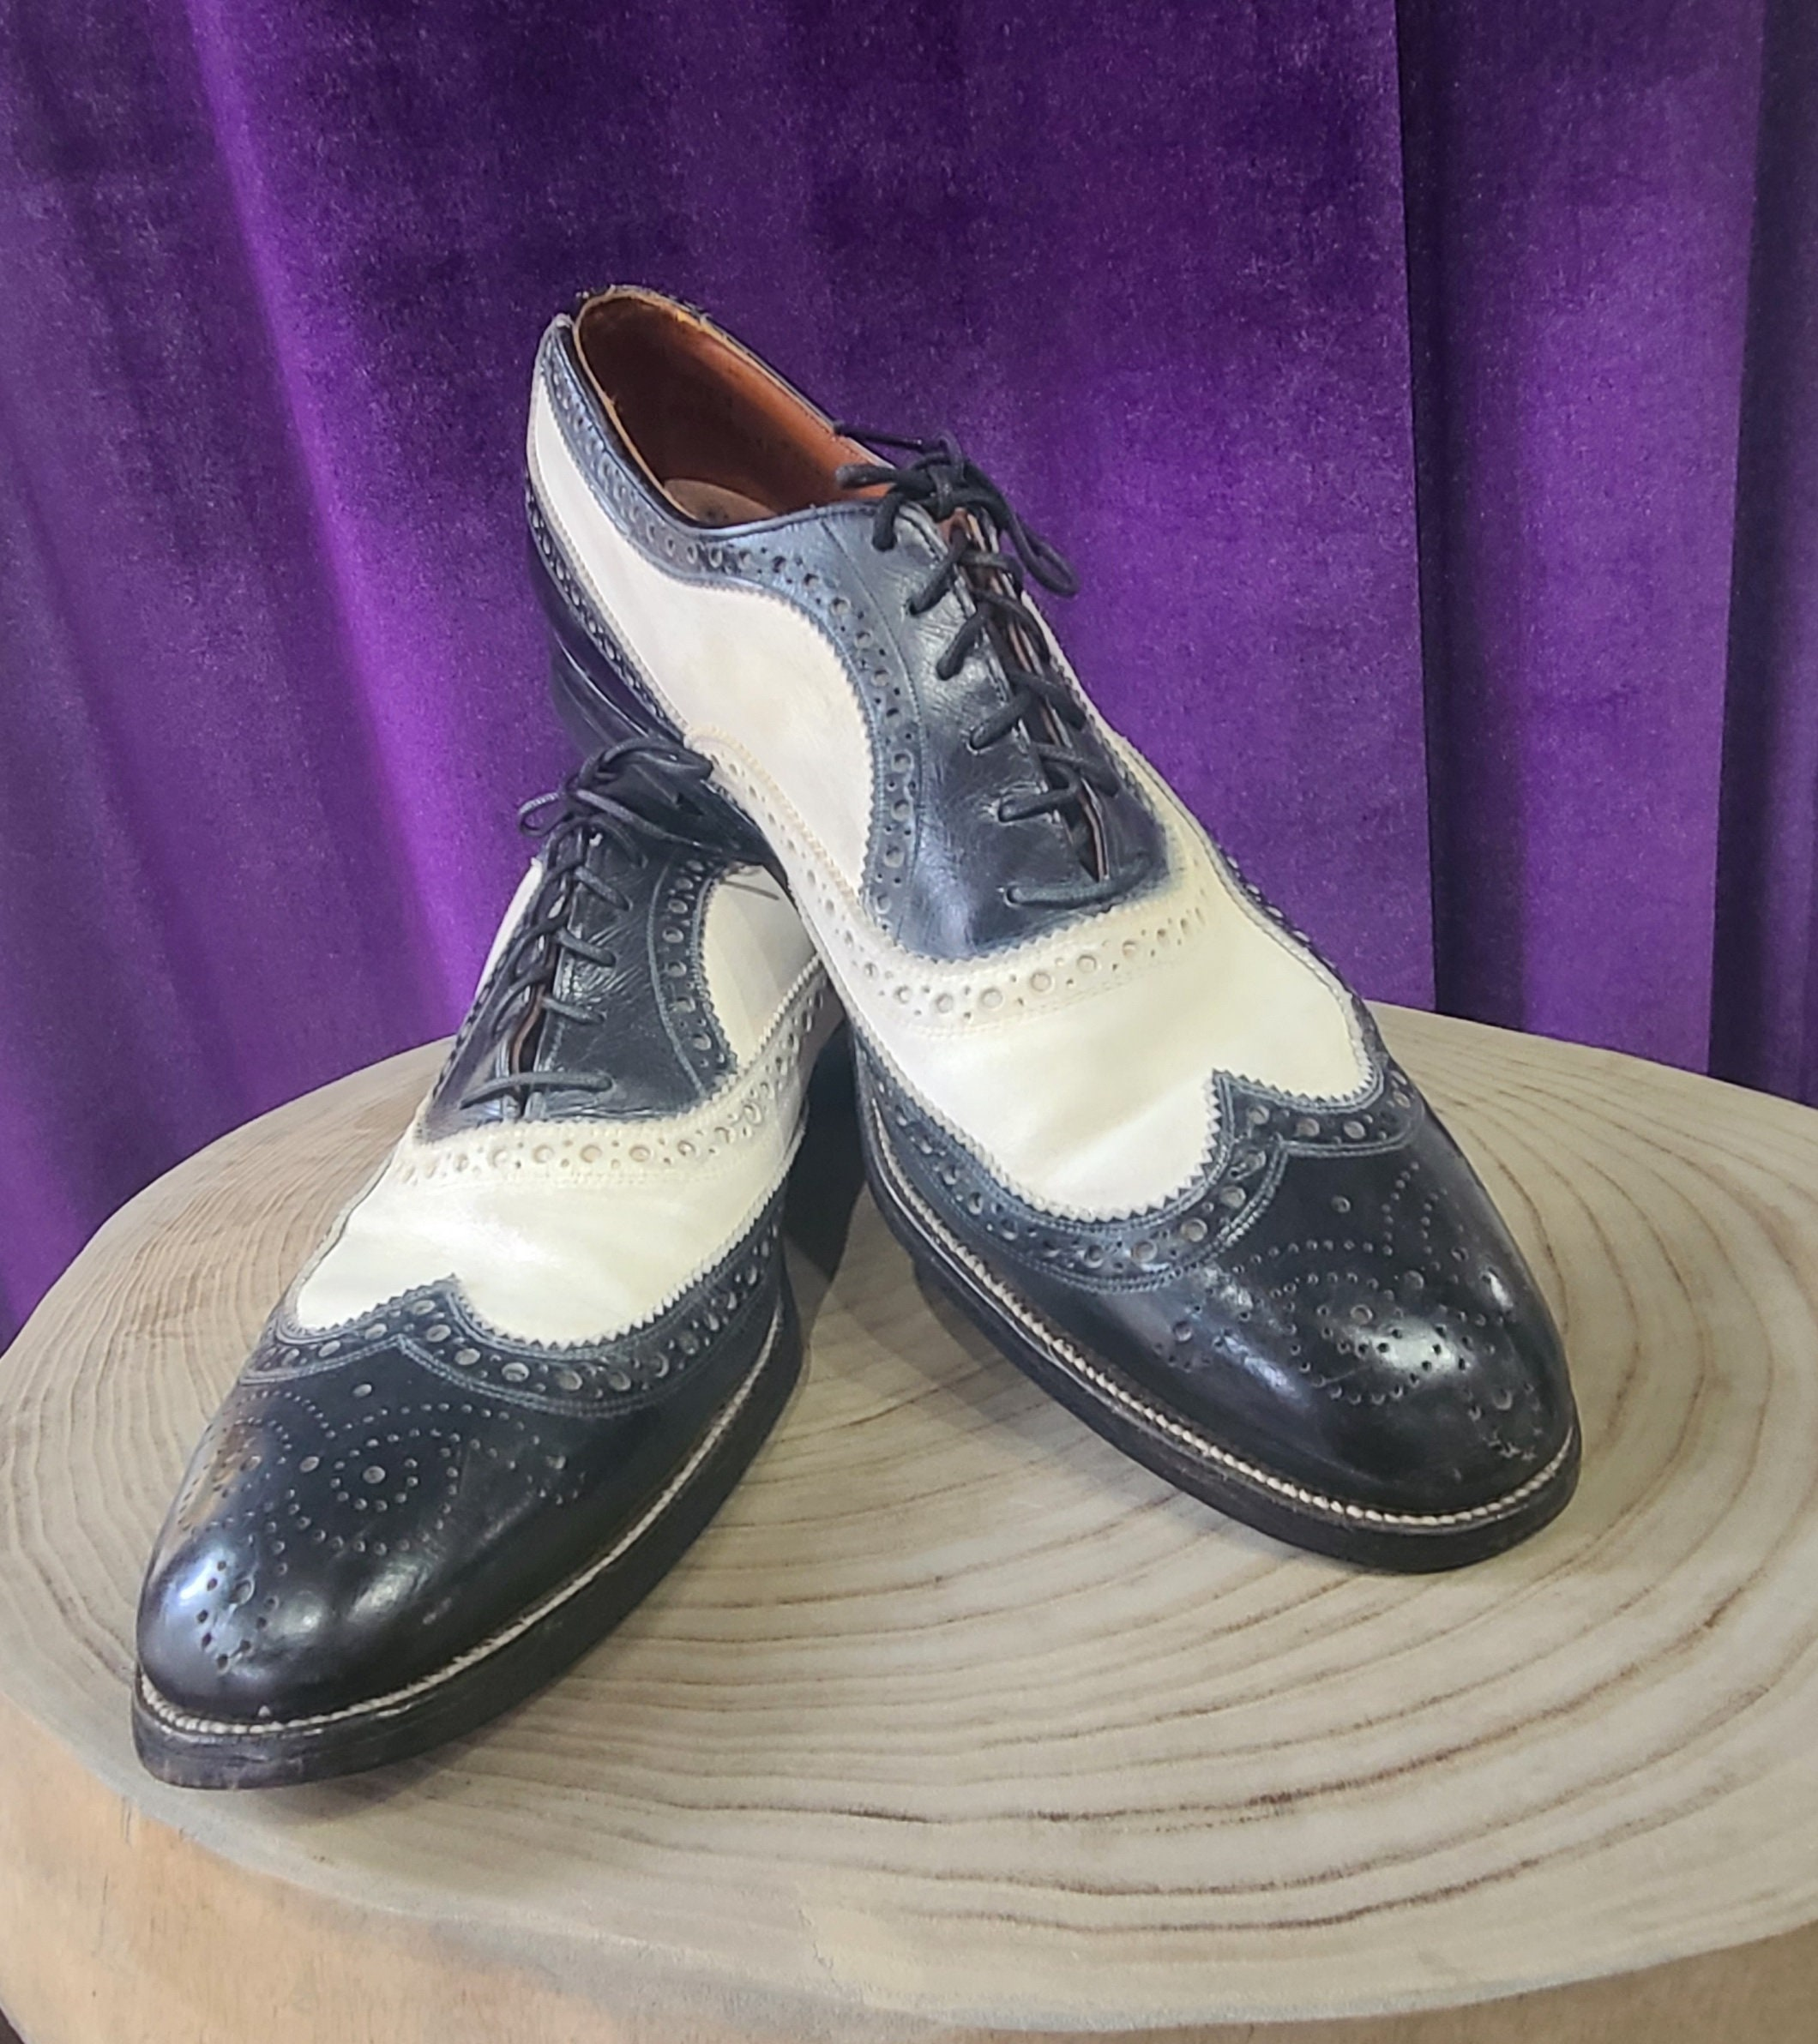 New 1930s Mens Fashion Ties Vintage Pair Of Black  White Leather Wing Tip Oxford Spectator Shoes, Ca 1940S $10,000.00 AT vintagedancer.com